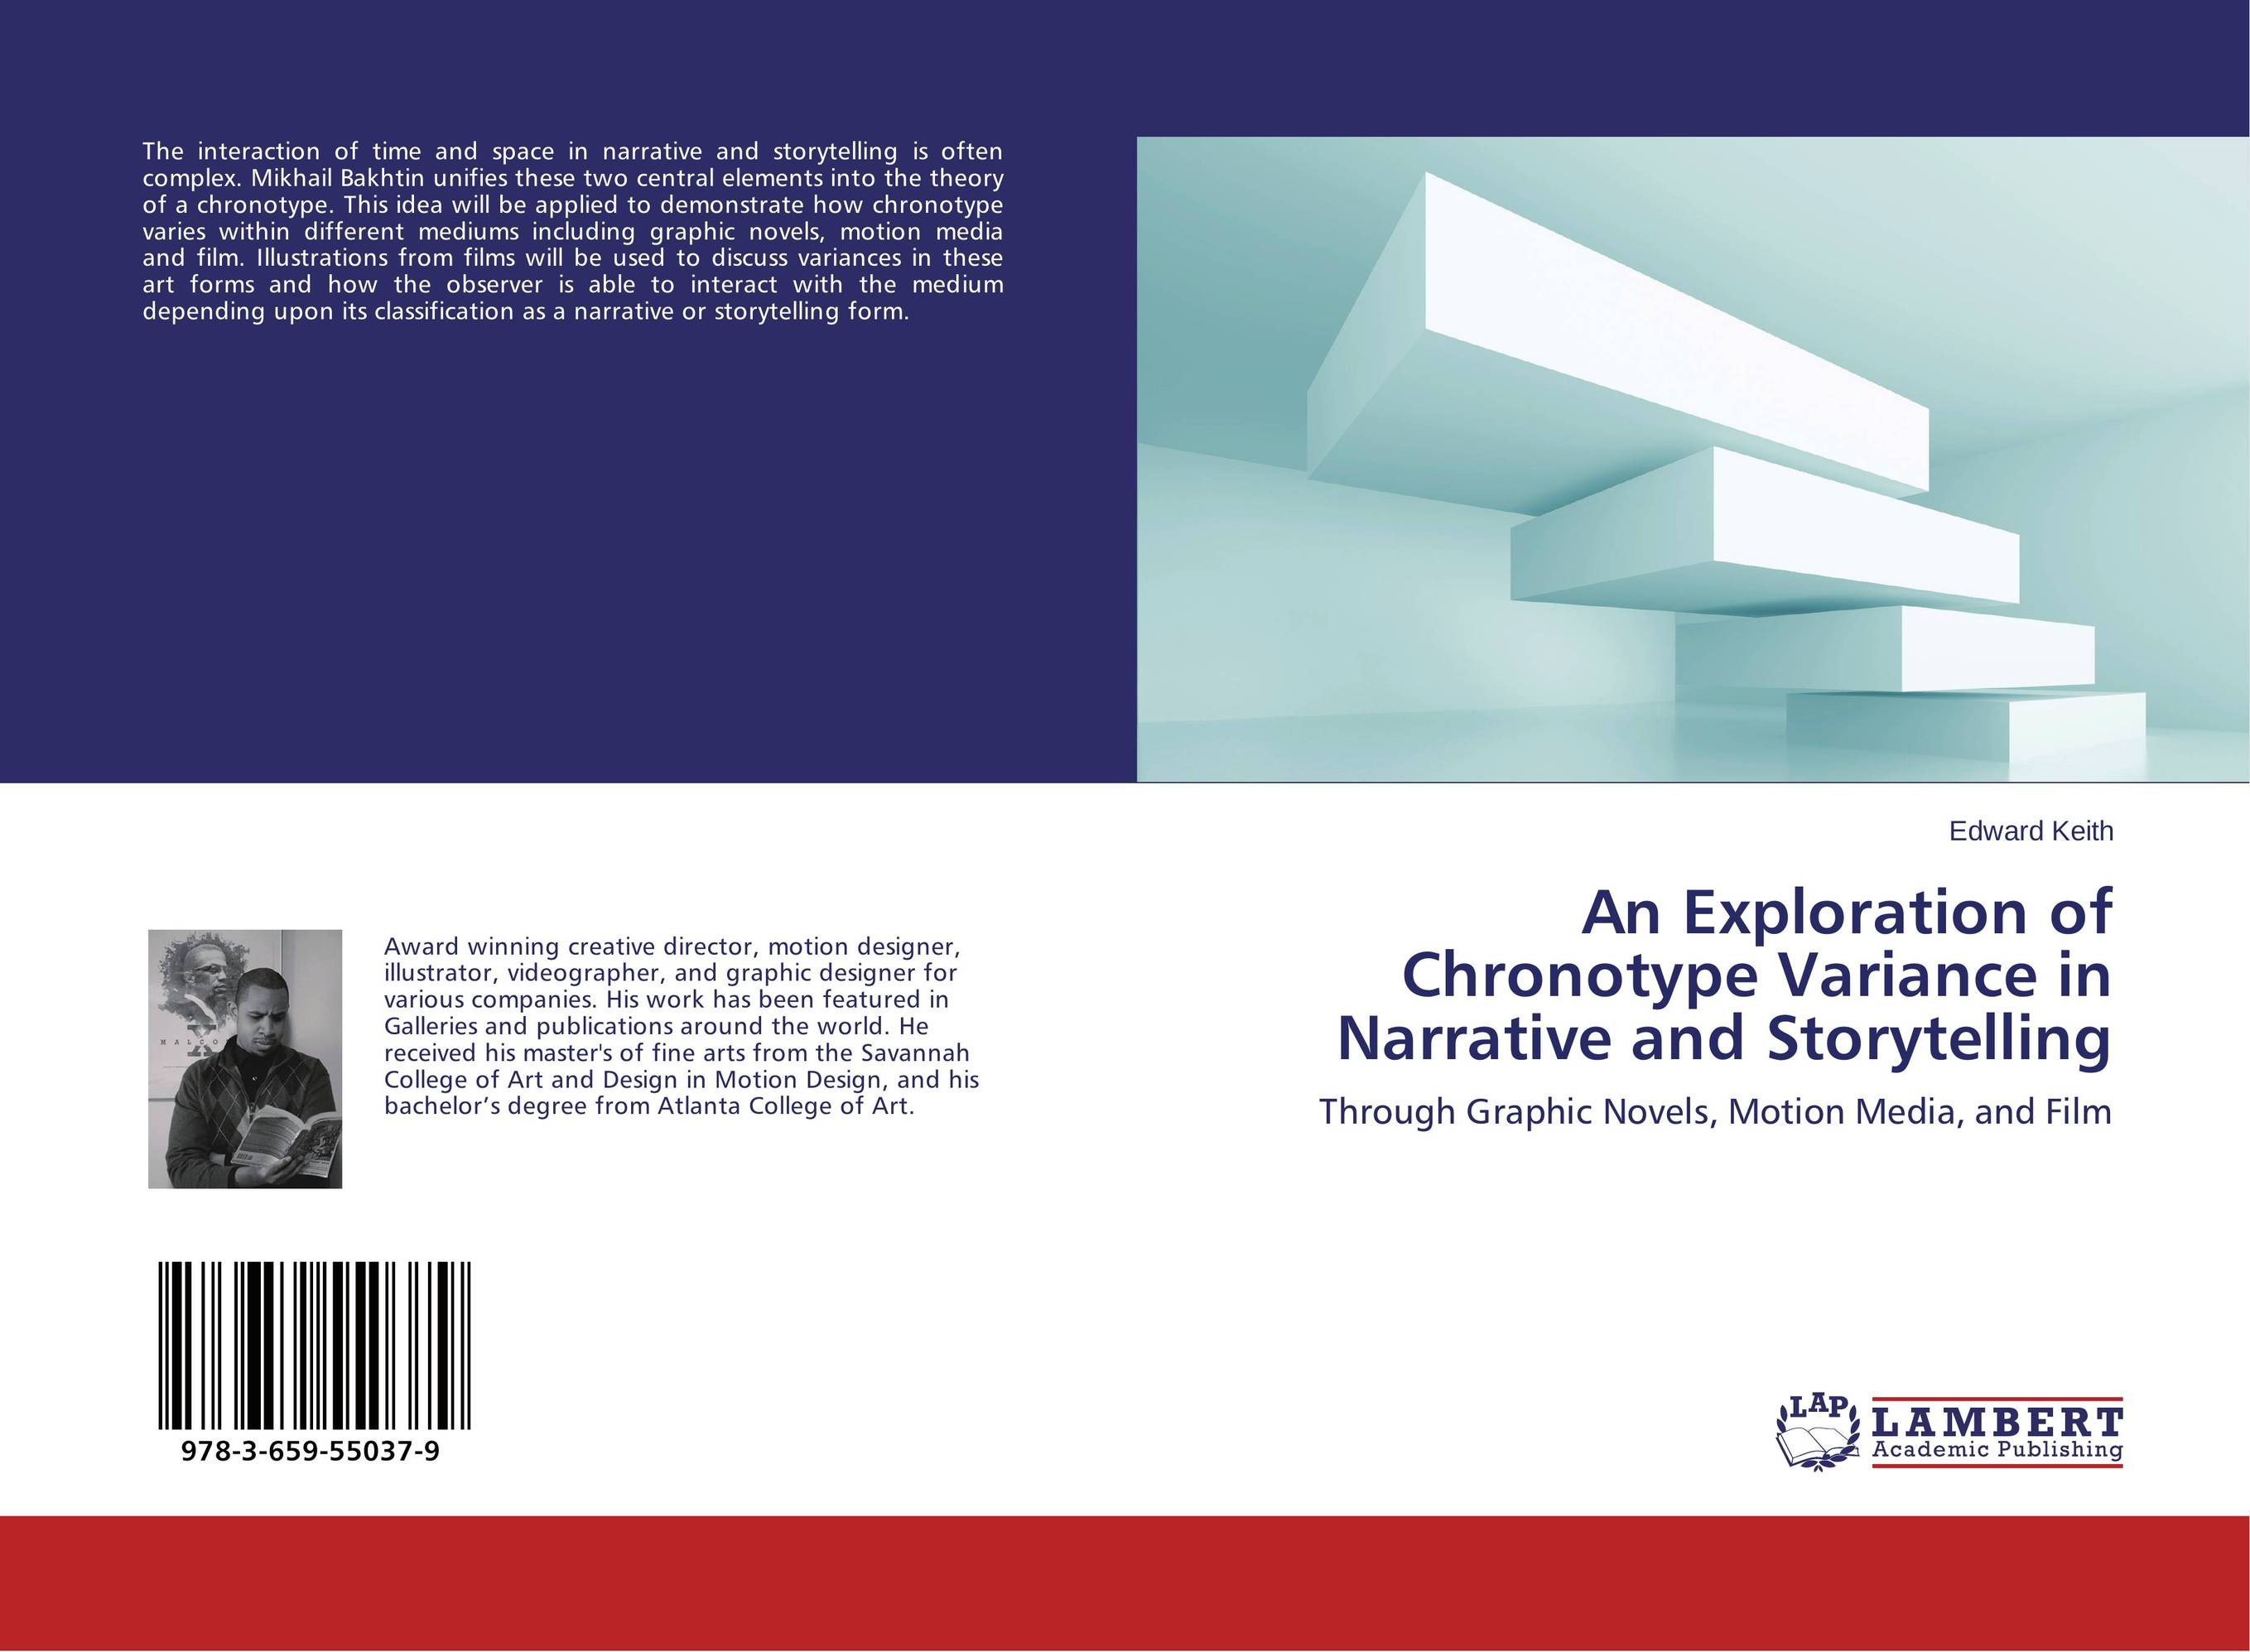 an analysis of the many masters that own and regulate the activities in the narrative of the life of Find the research you need to help your work and join open discussions with the authors and other experts create exposure for your work share your work from any stage of the research cycle to.